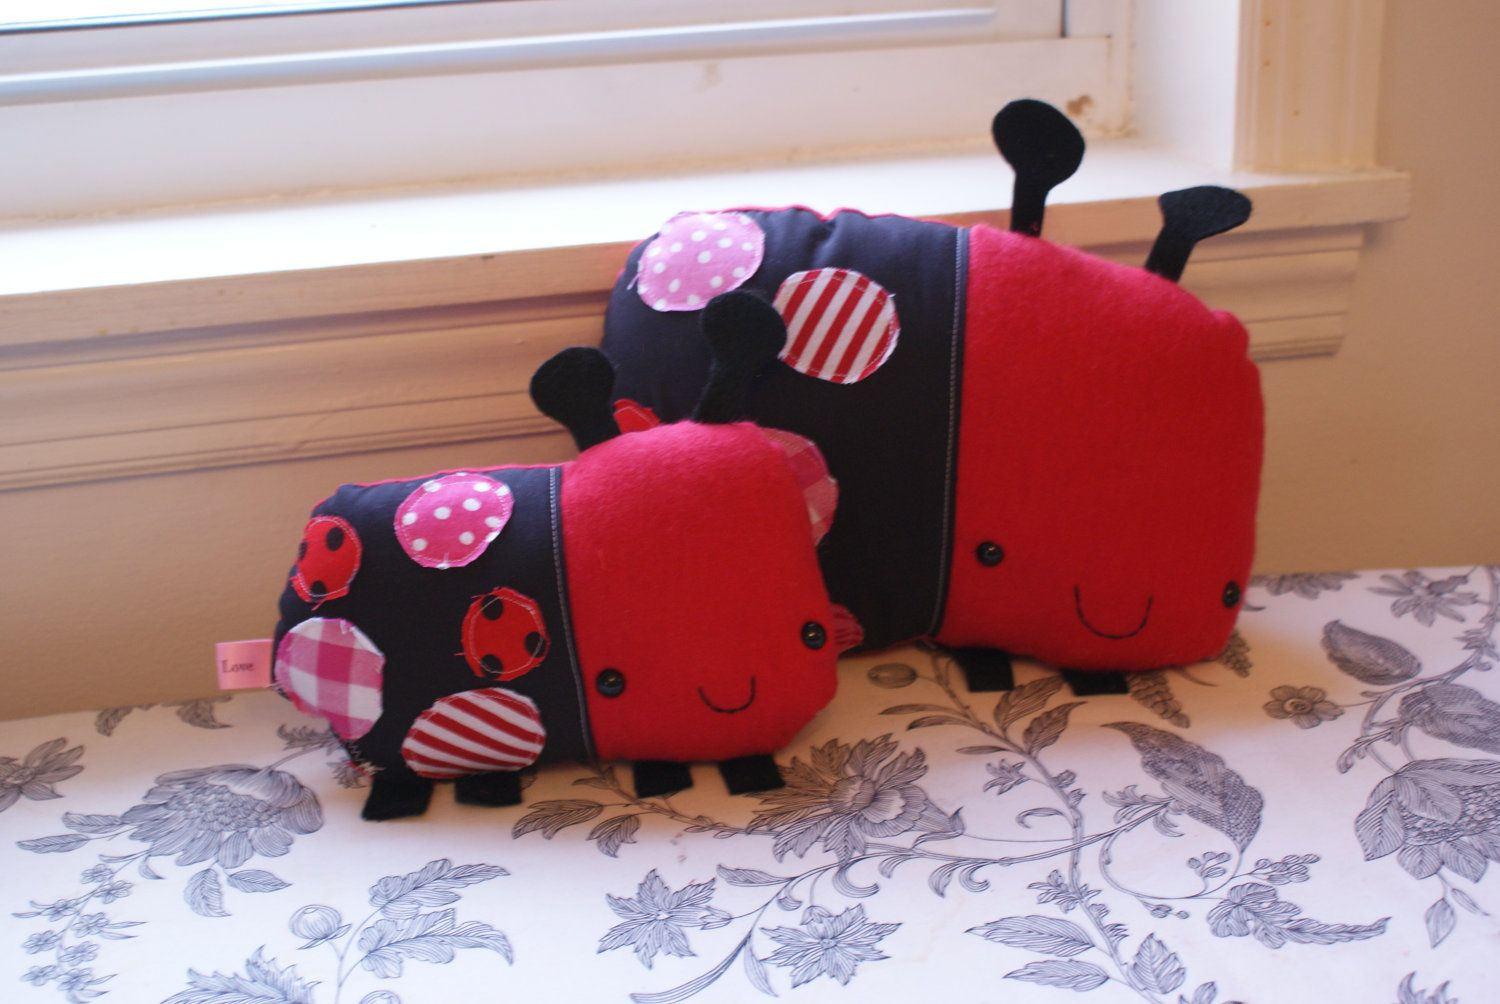 LOVE BUG lady bug softie toy plush doll, made to order